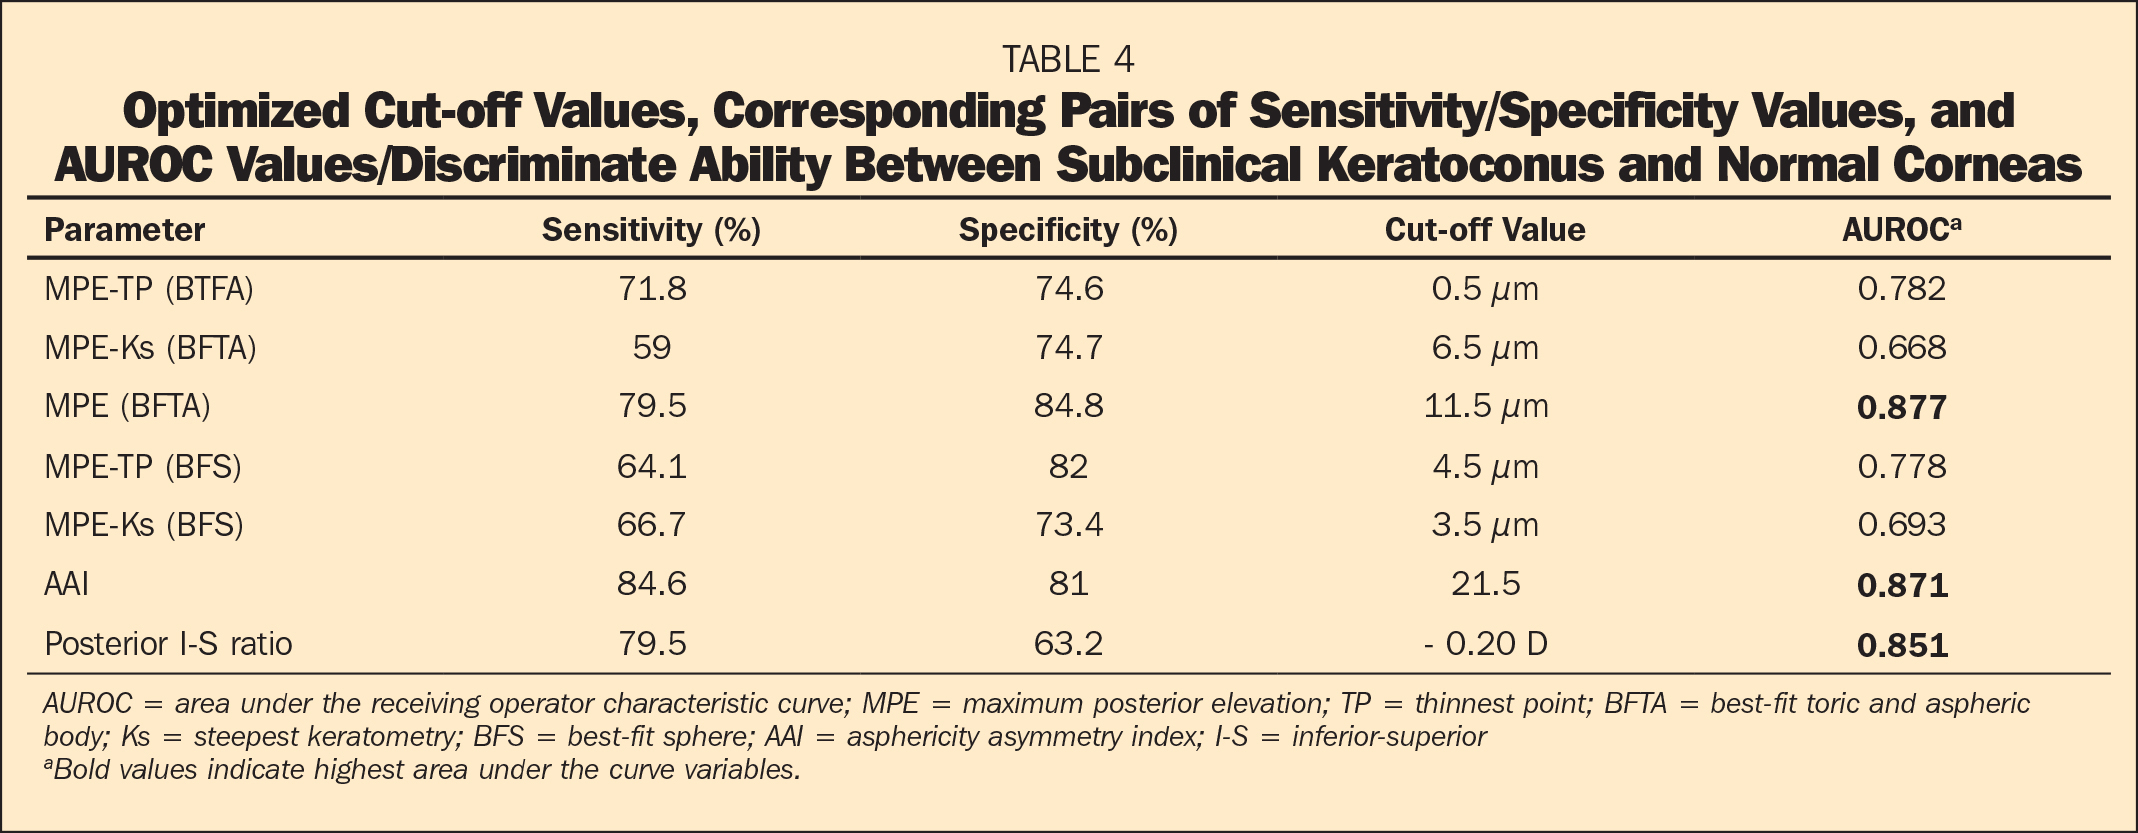 Optimized Cut-off Values, Corresponding Pairs of Sensitivity/Specificity Values, and AUROC Values/Discriminate Ability Between Subclinical Keratoconus and Normal Corneas